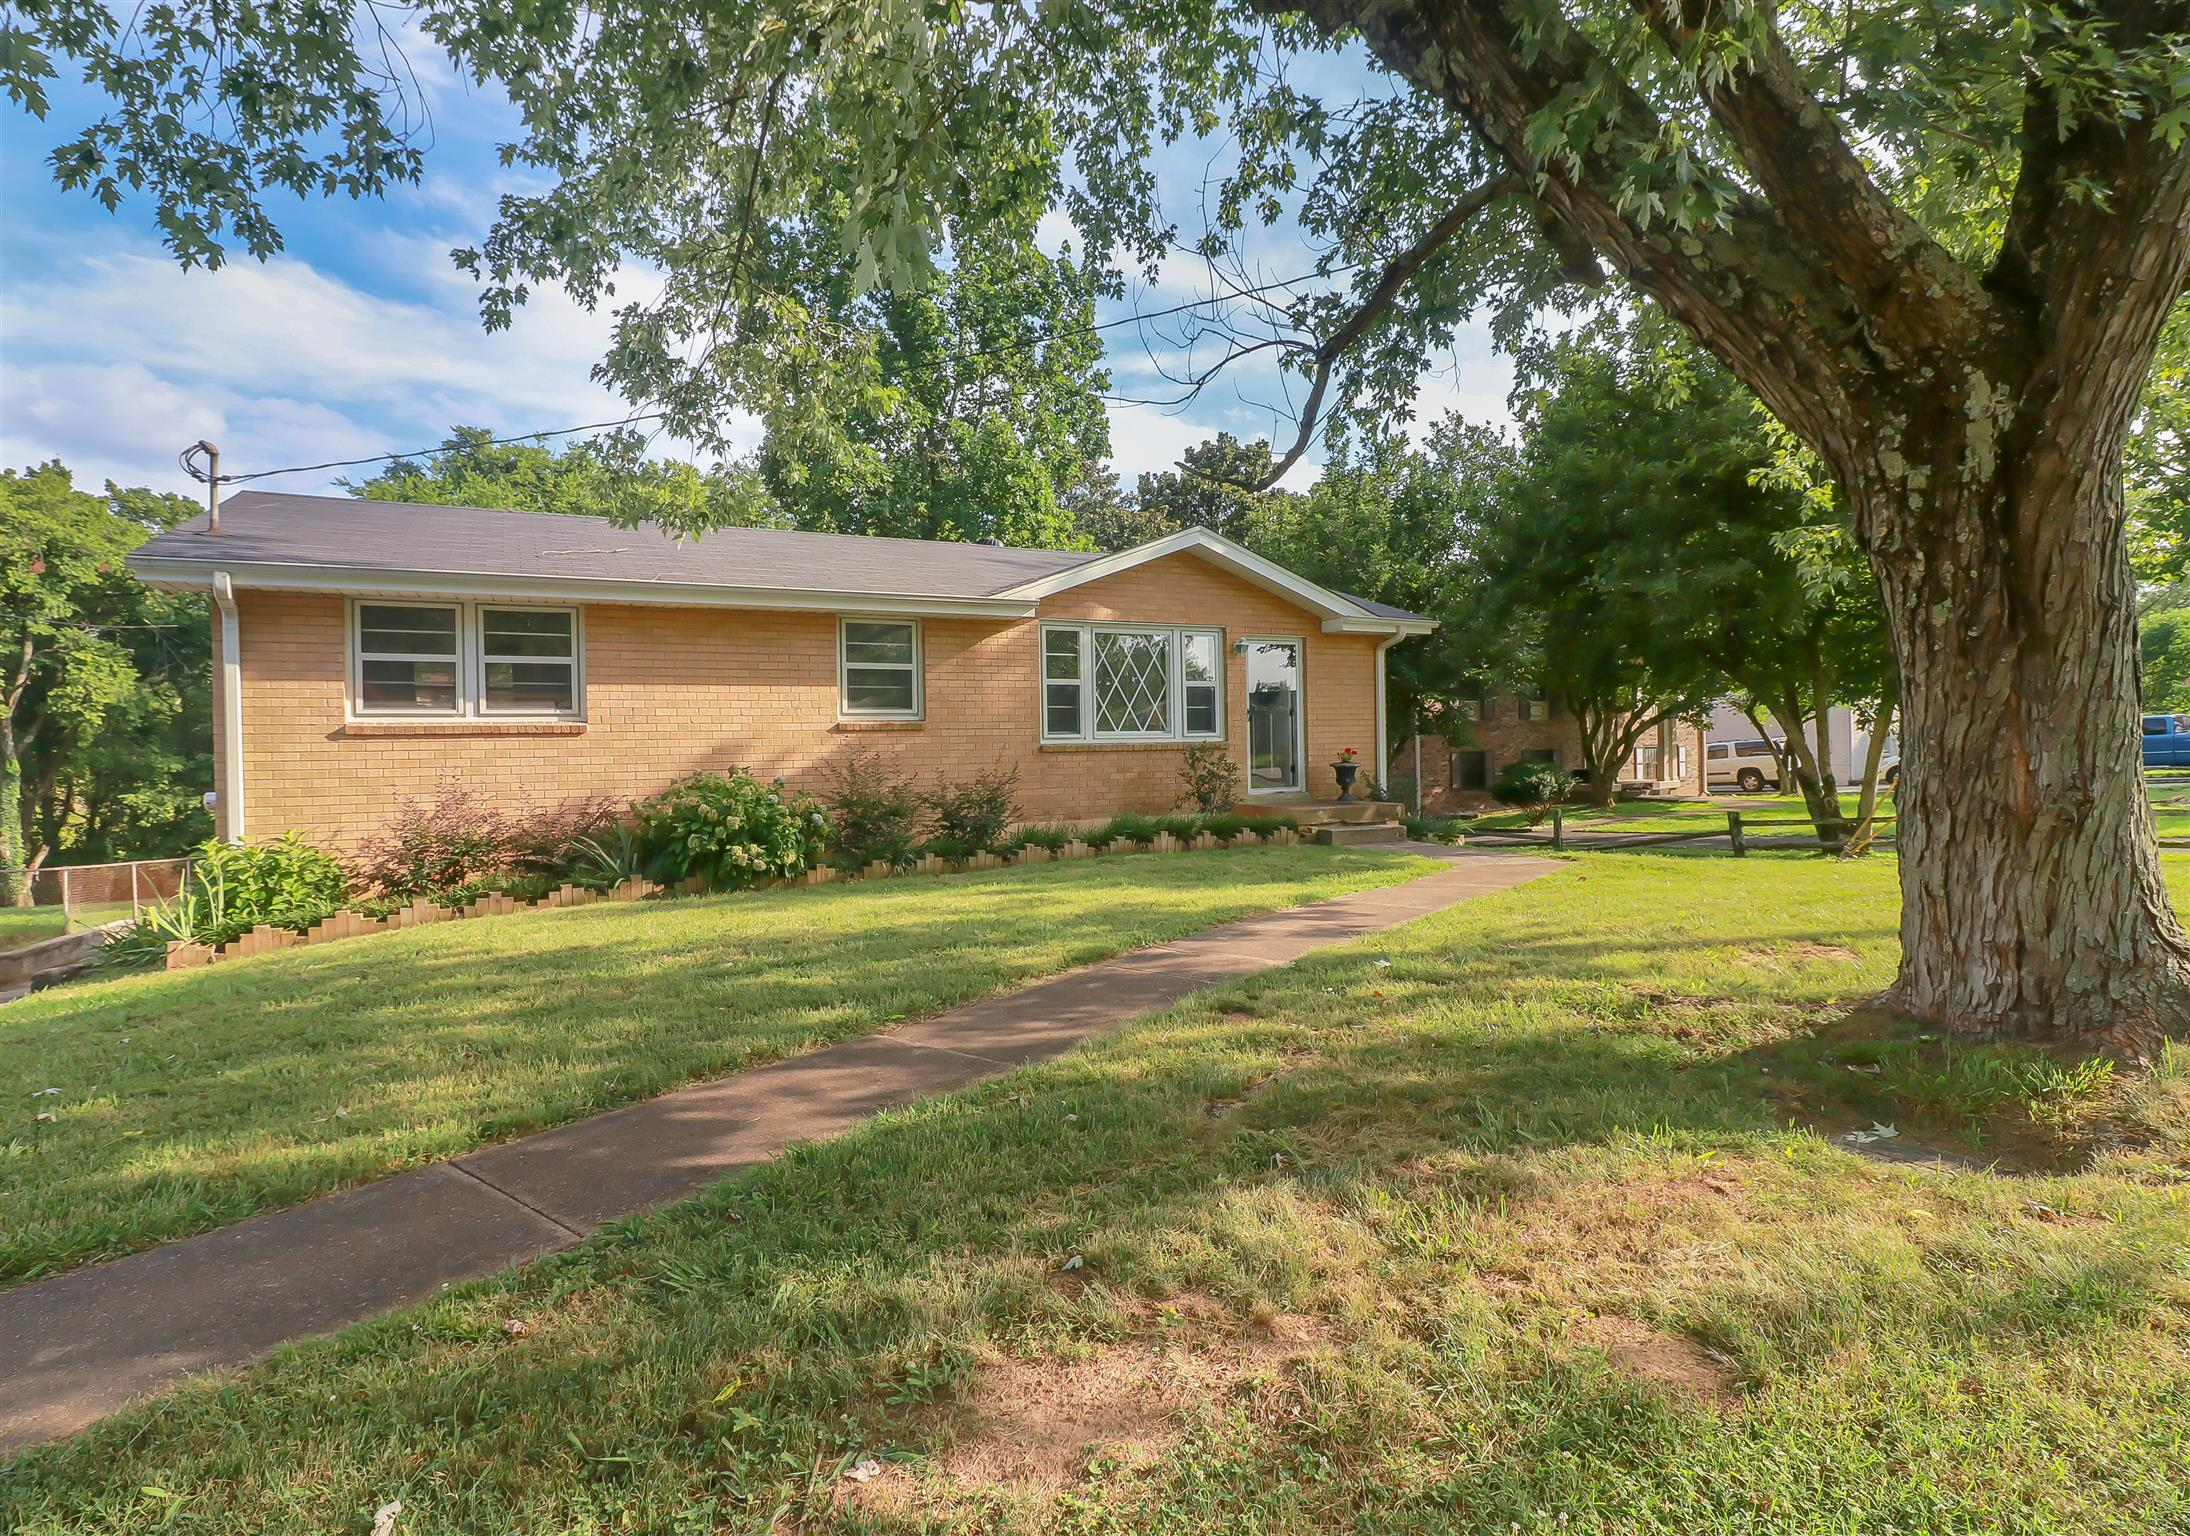 753 Reeves Rd, Nashville-Antioch in Davidson County County, TN 37013 Home for Sale